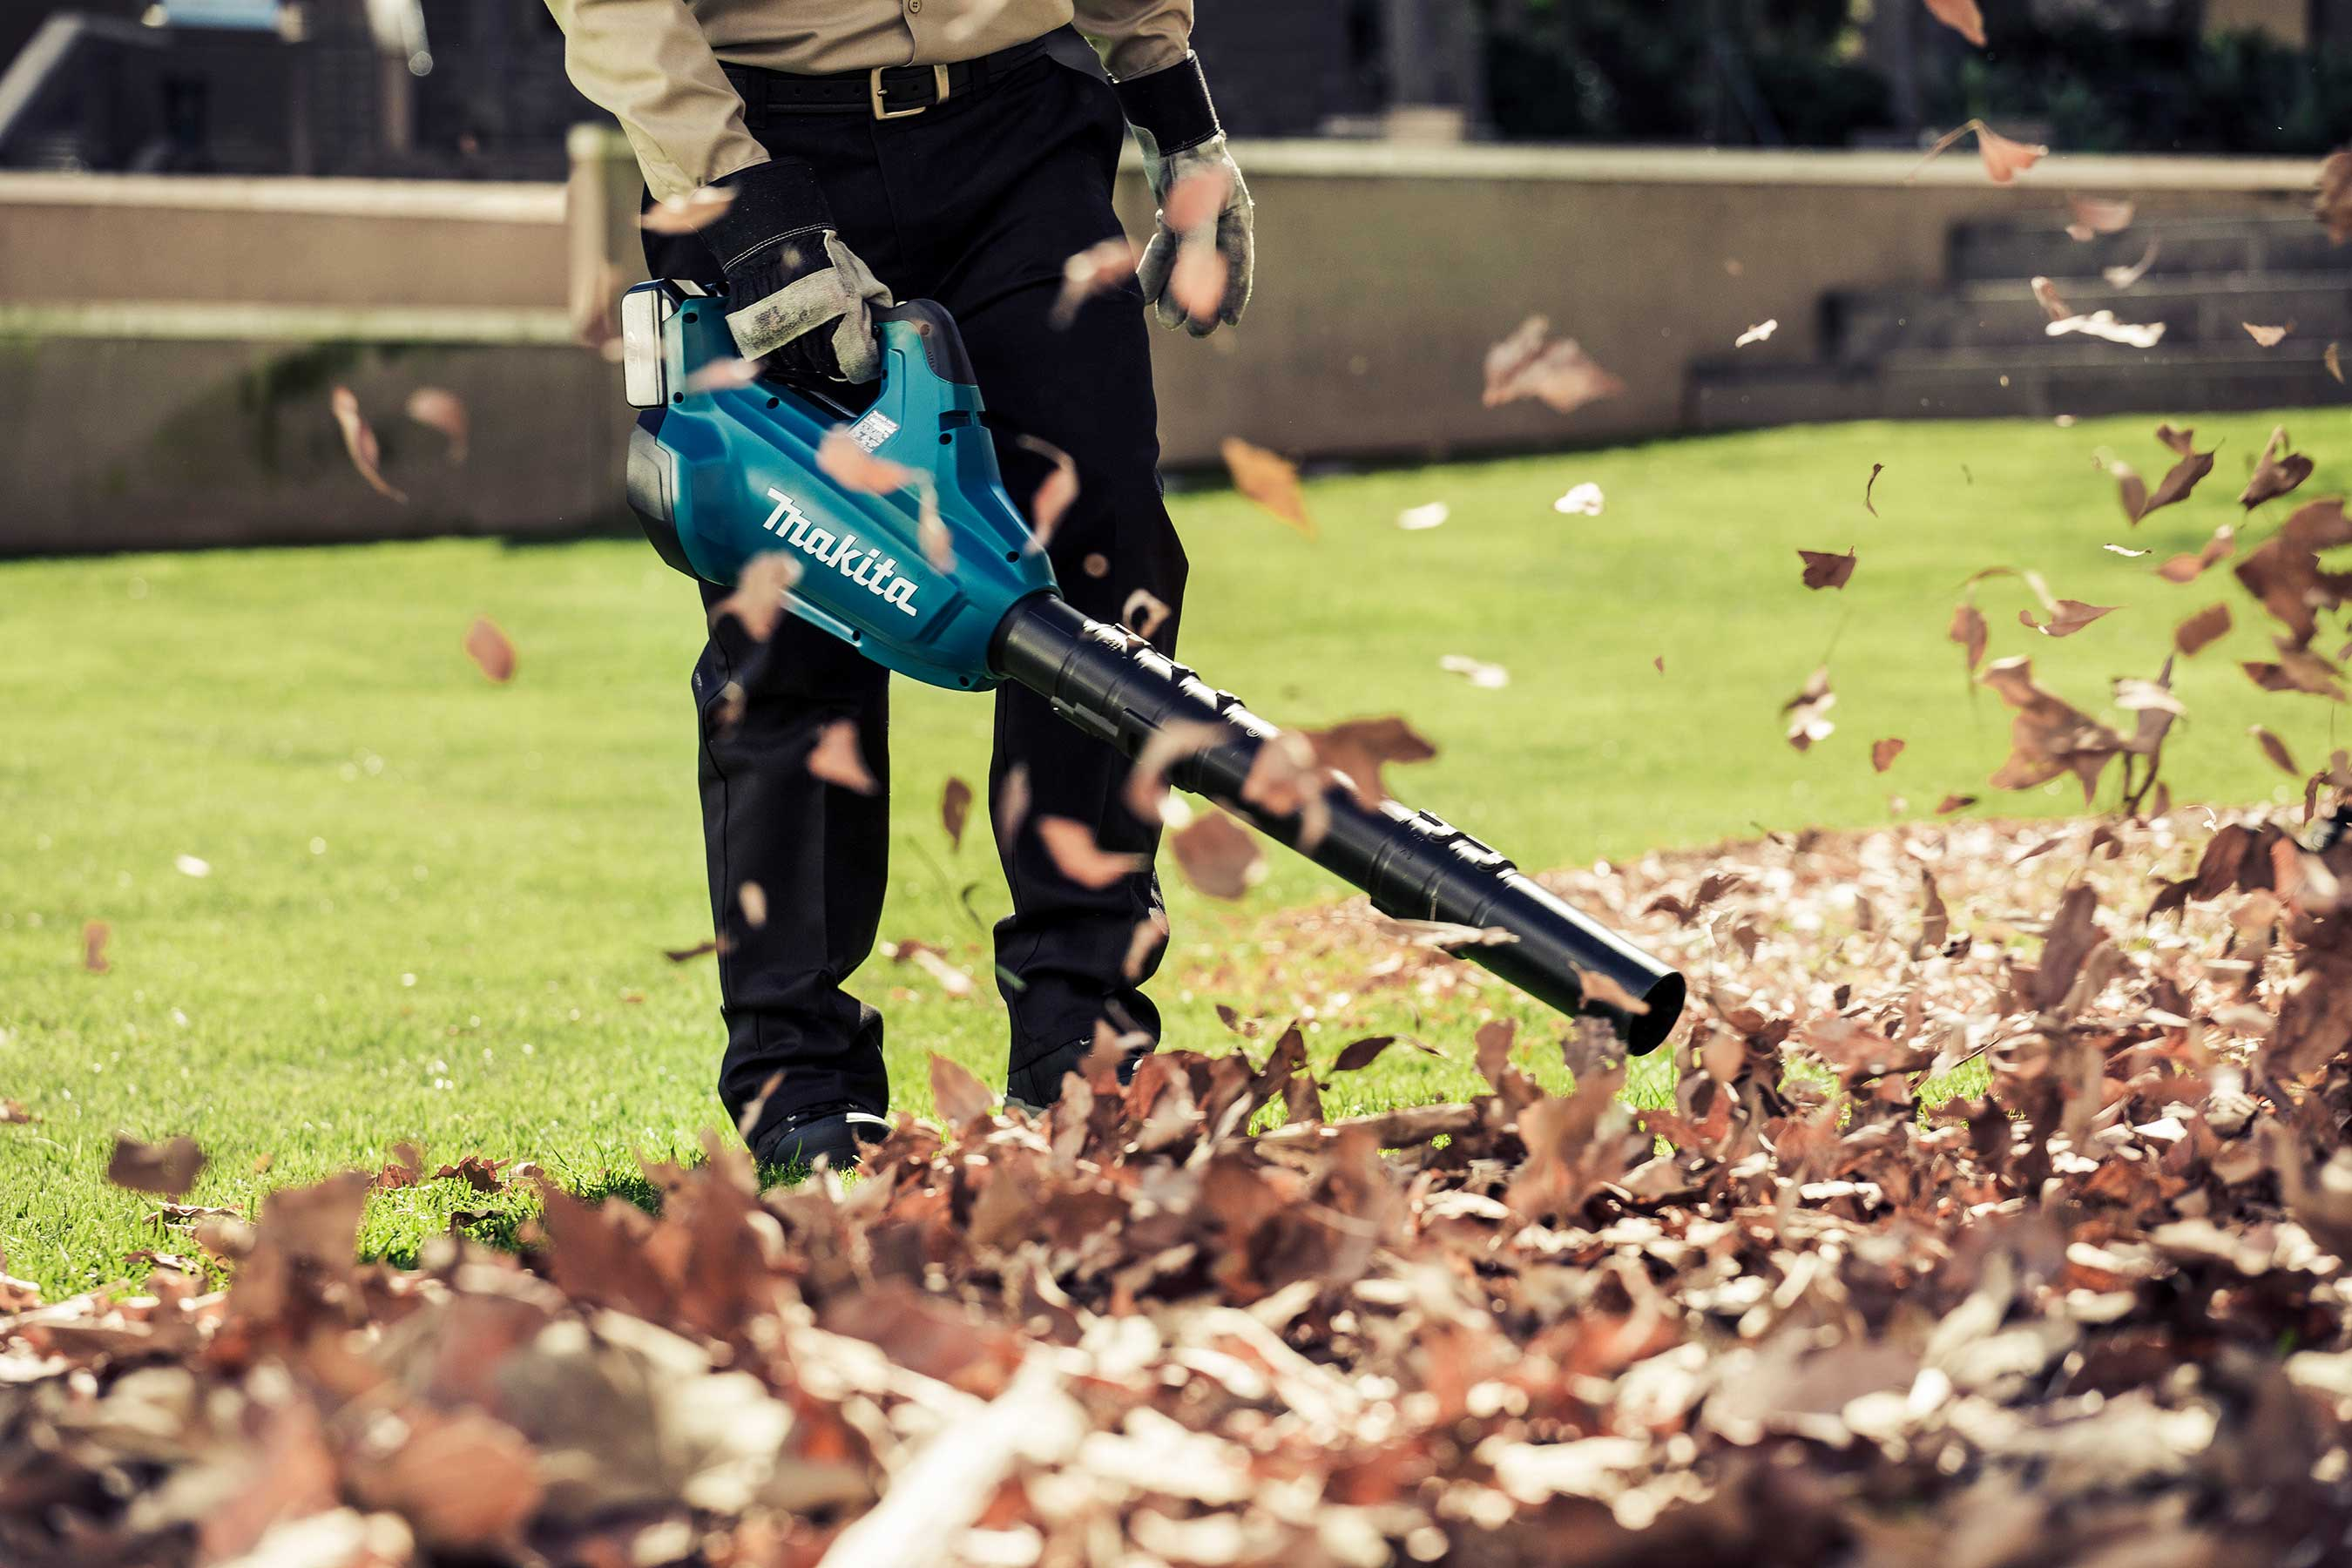 The Makita LXT Cordless Blower reaches speeds up to 120 MPH.